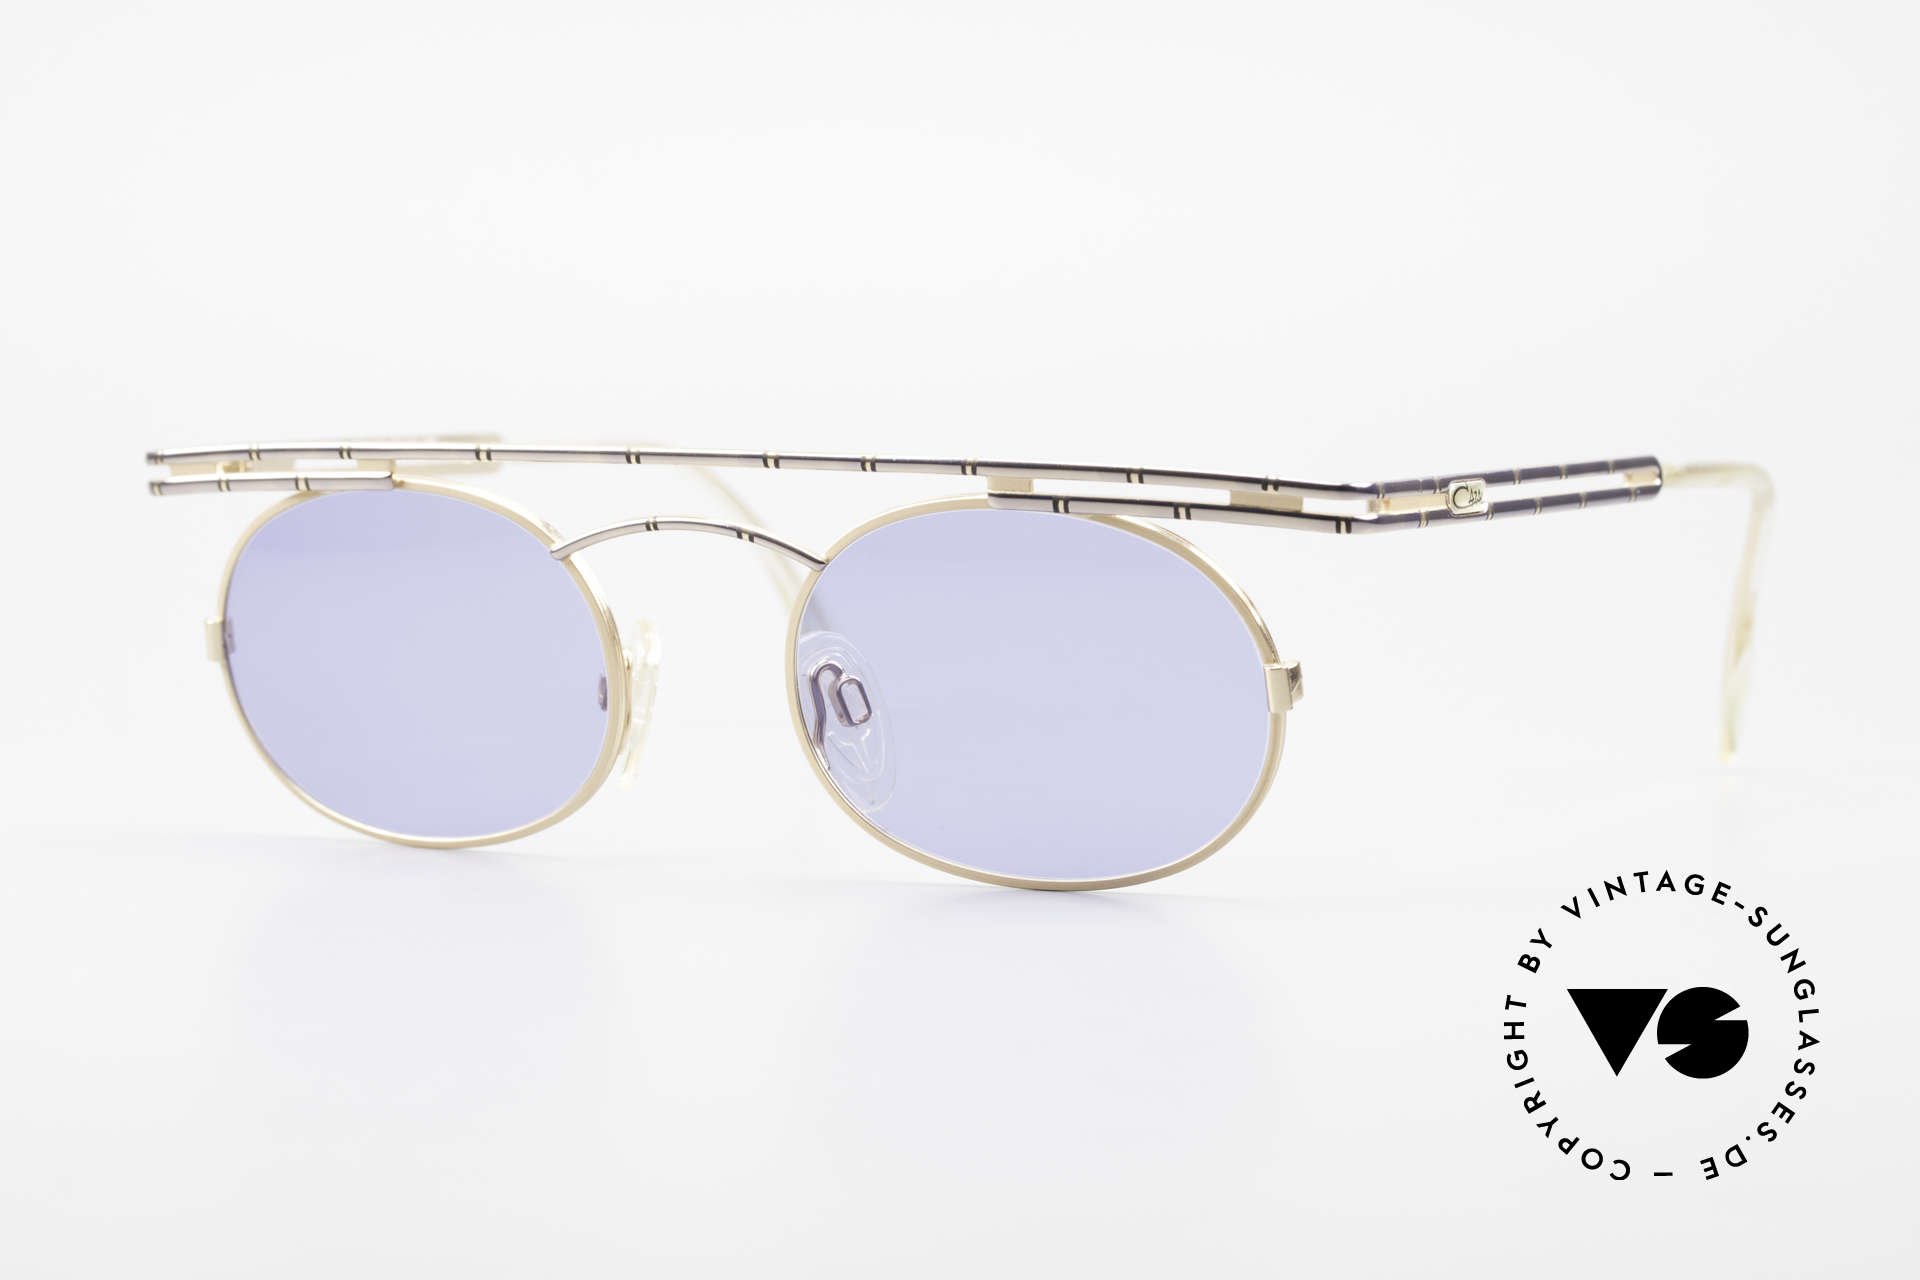 Cazal 761 Old 90's Original Sunglasses, expressive CAZAL vintage sunglasses from app. 1997, Made for Men and Women